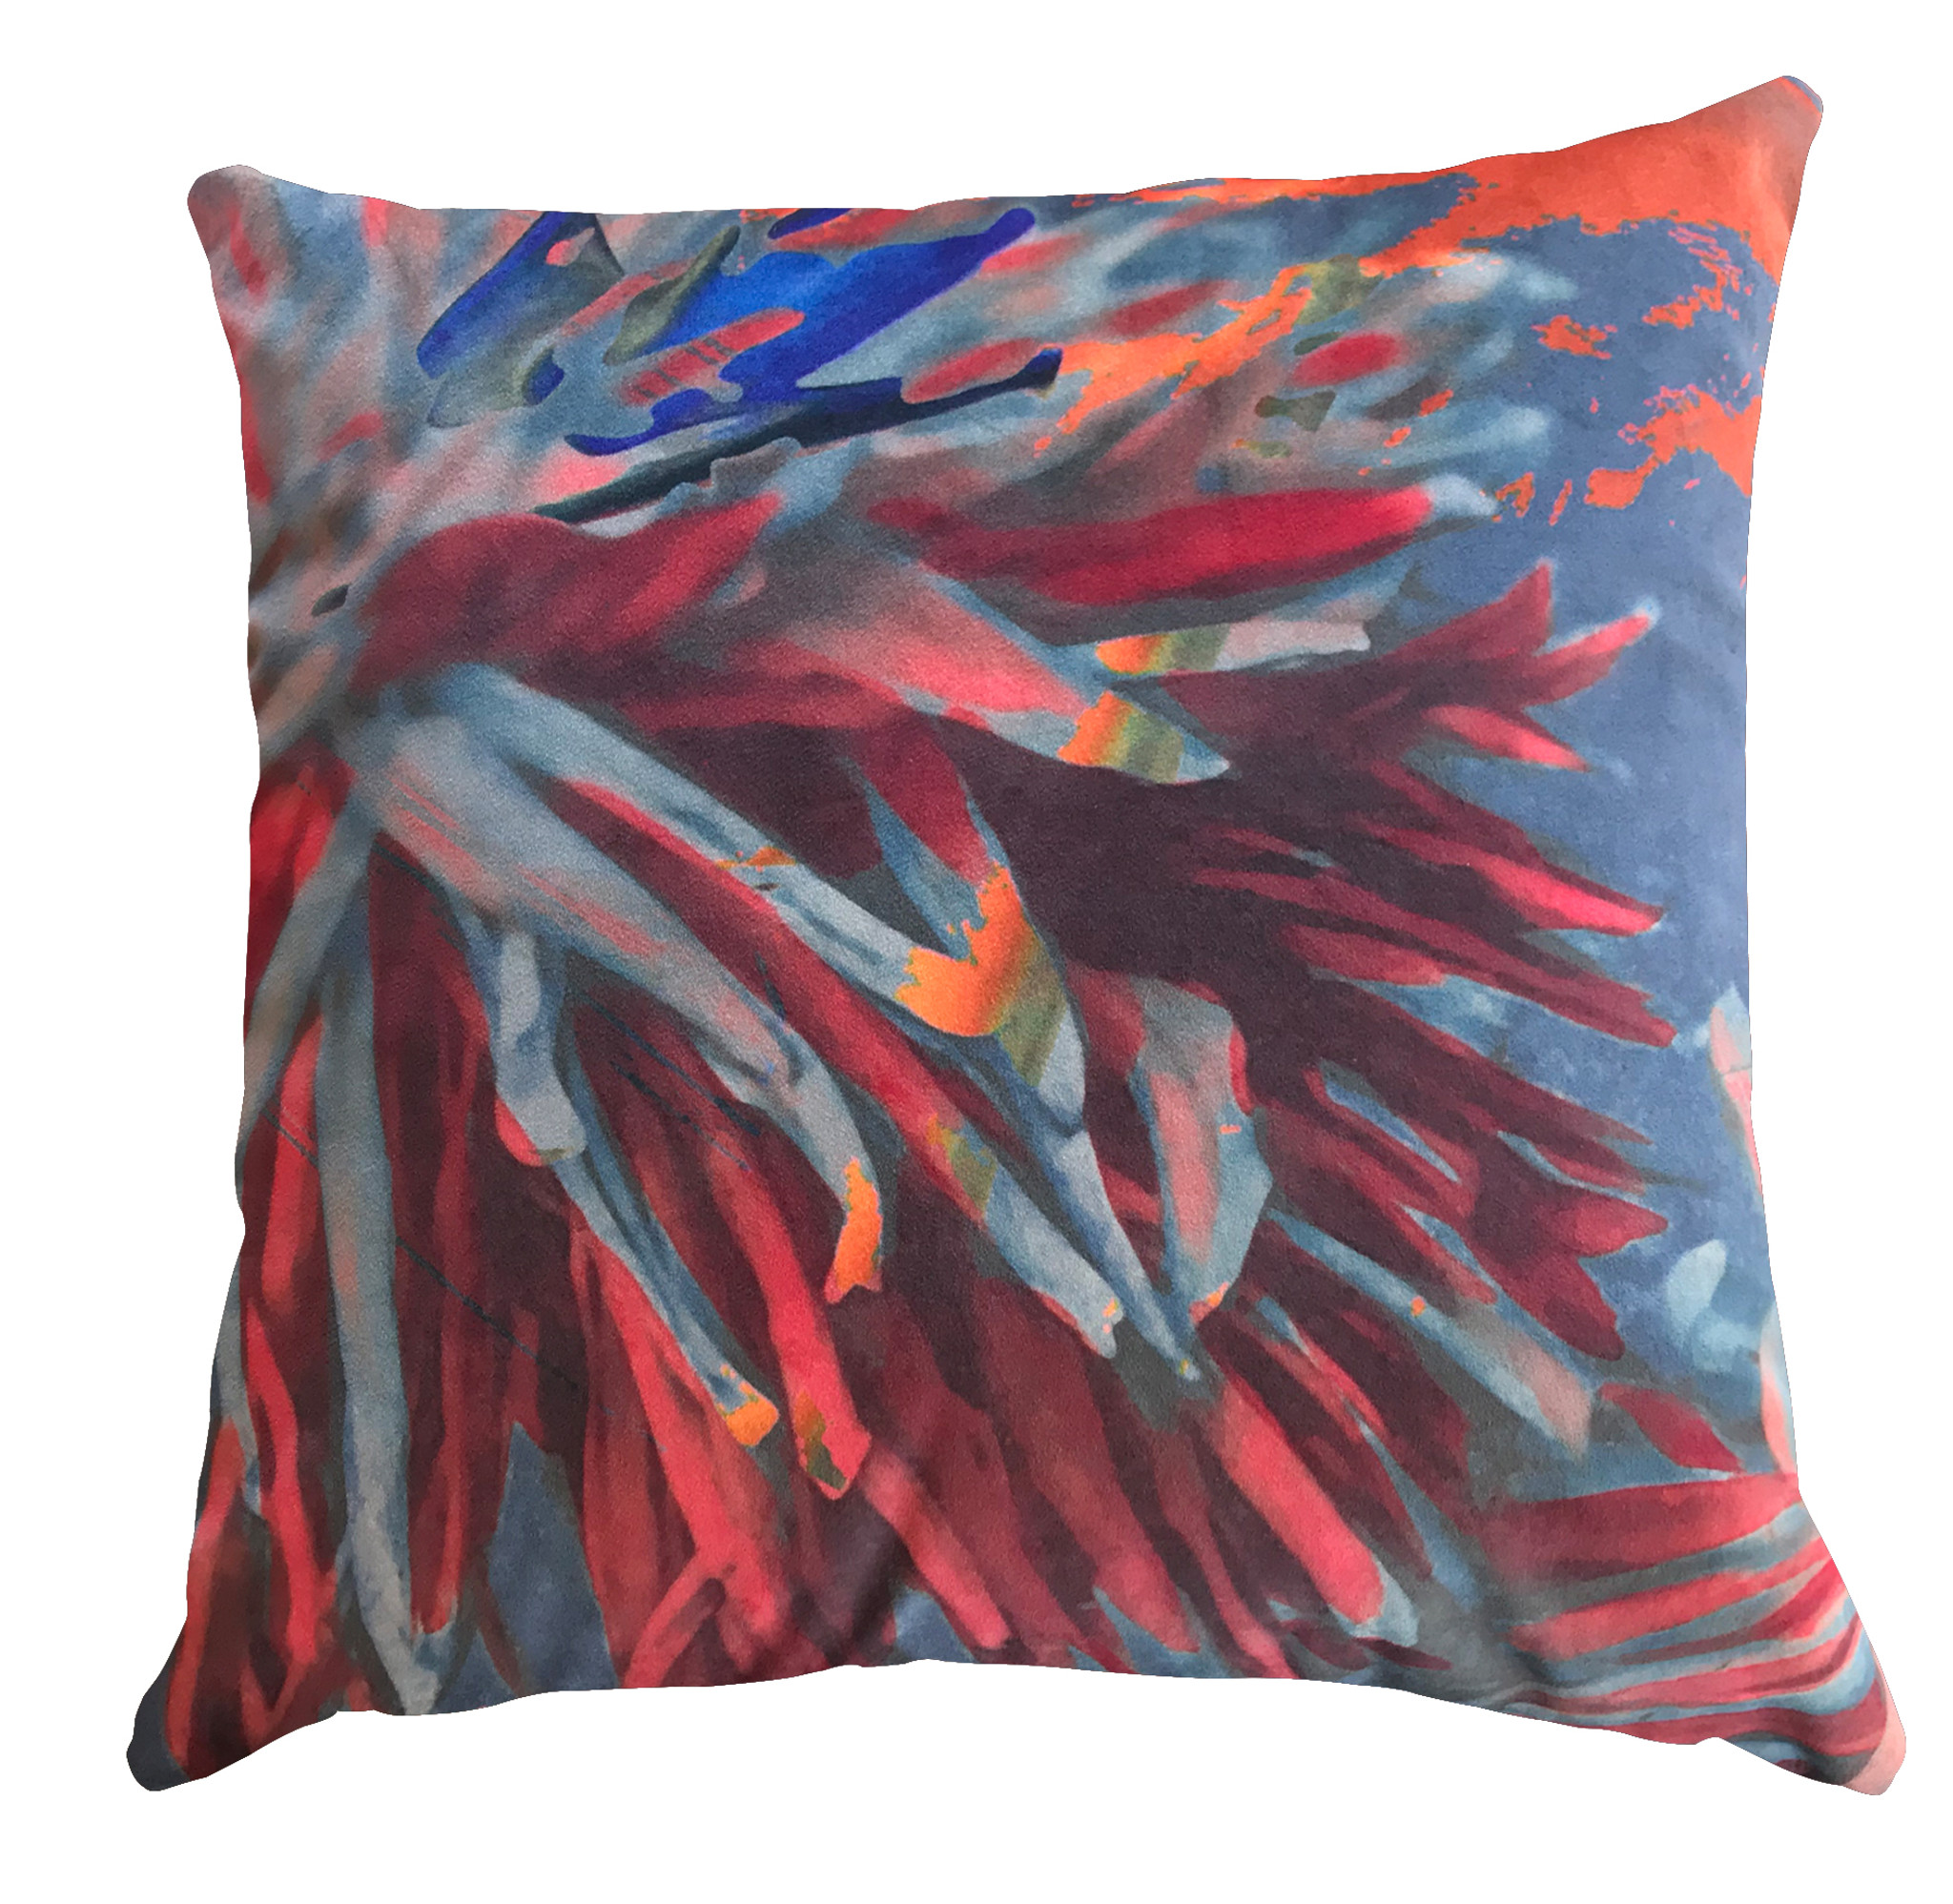 Cushion Cover - Blurred Vision - Close Up in Orange